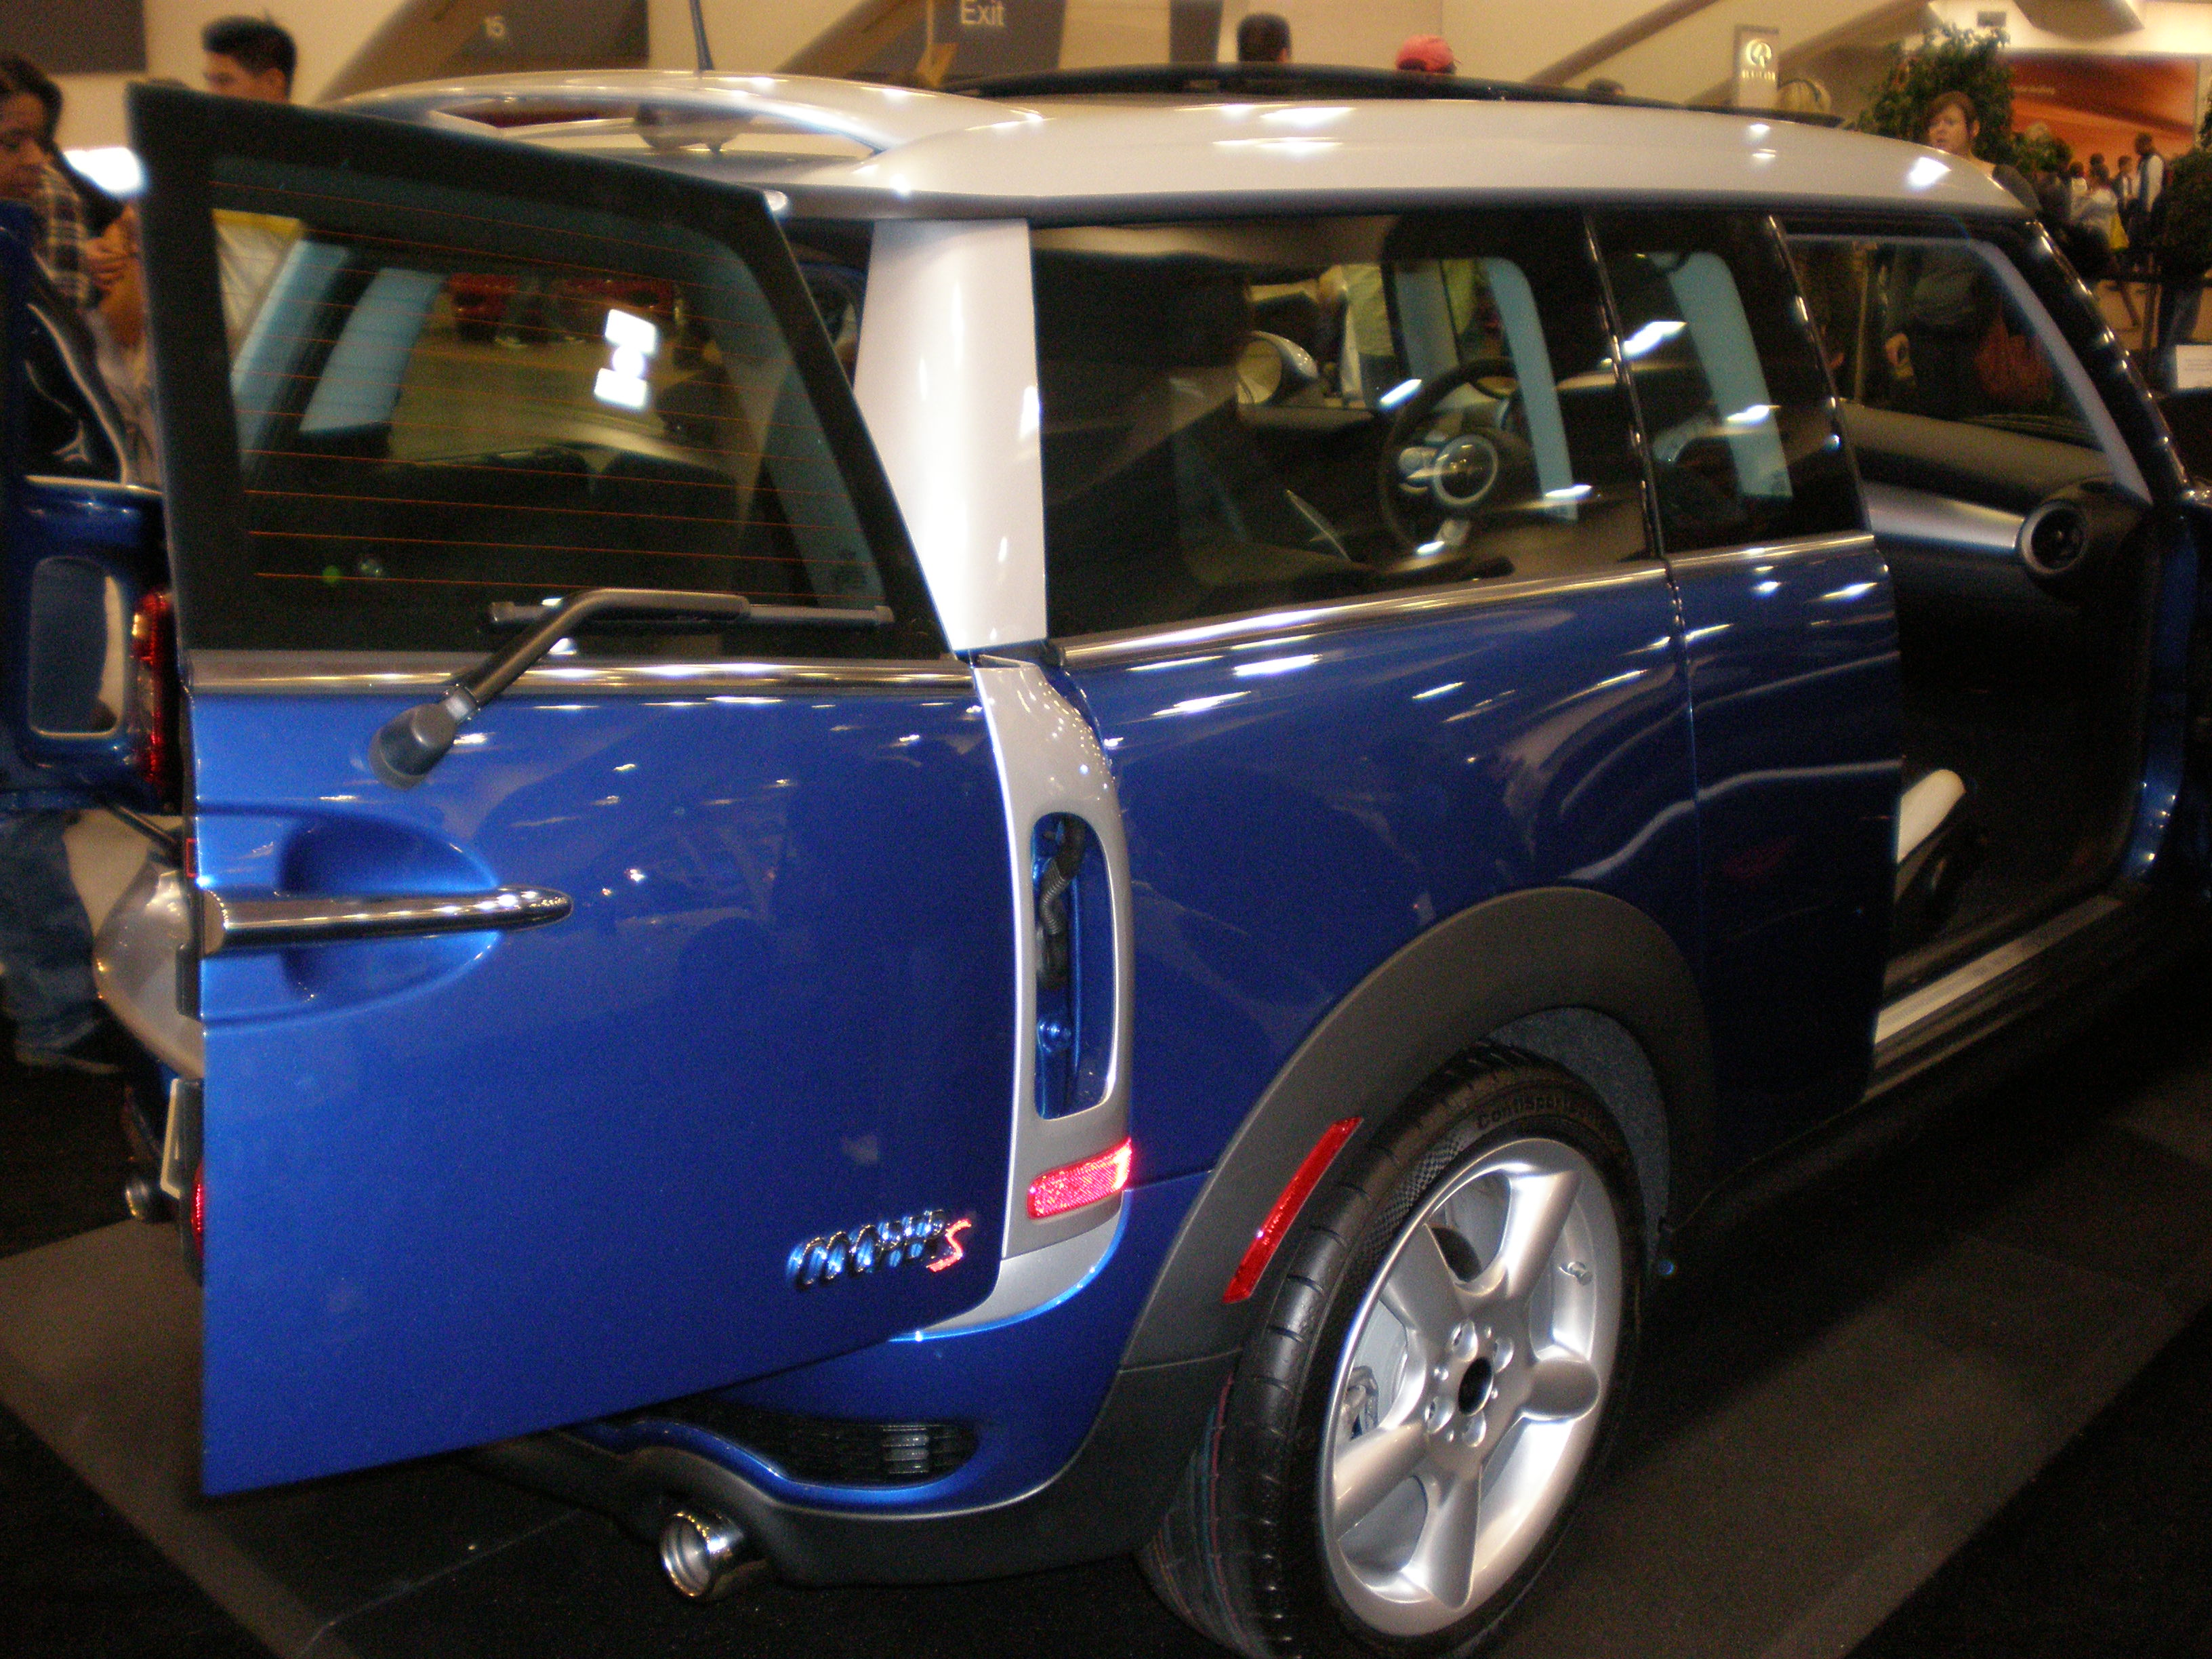 File2009 Blue Mini Cooper S Clubman Right Sidejpg Wikimedia Commons